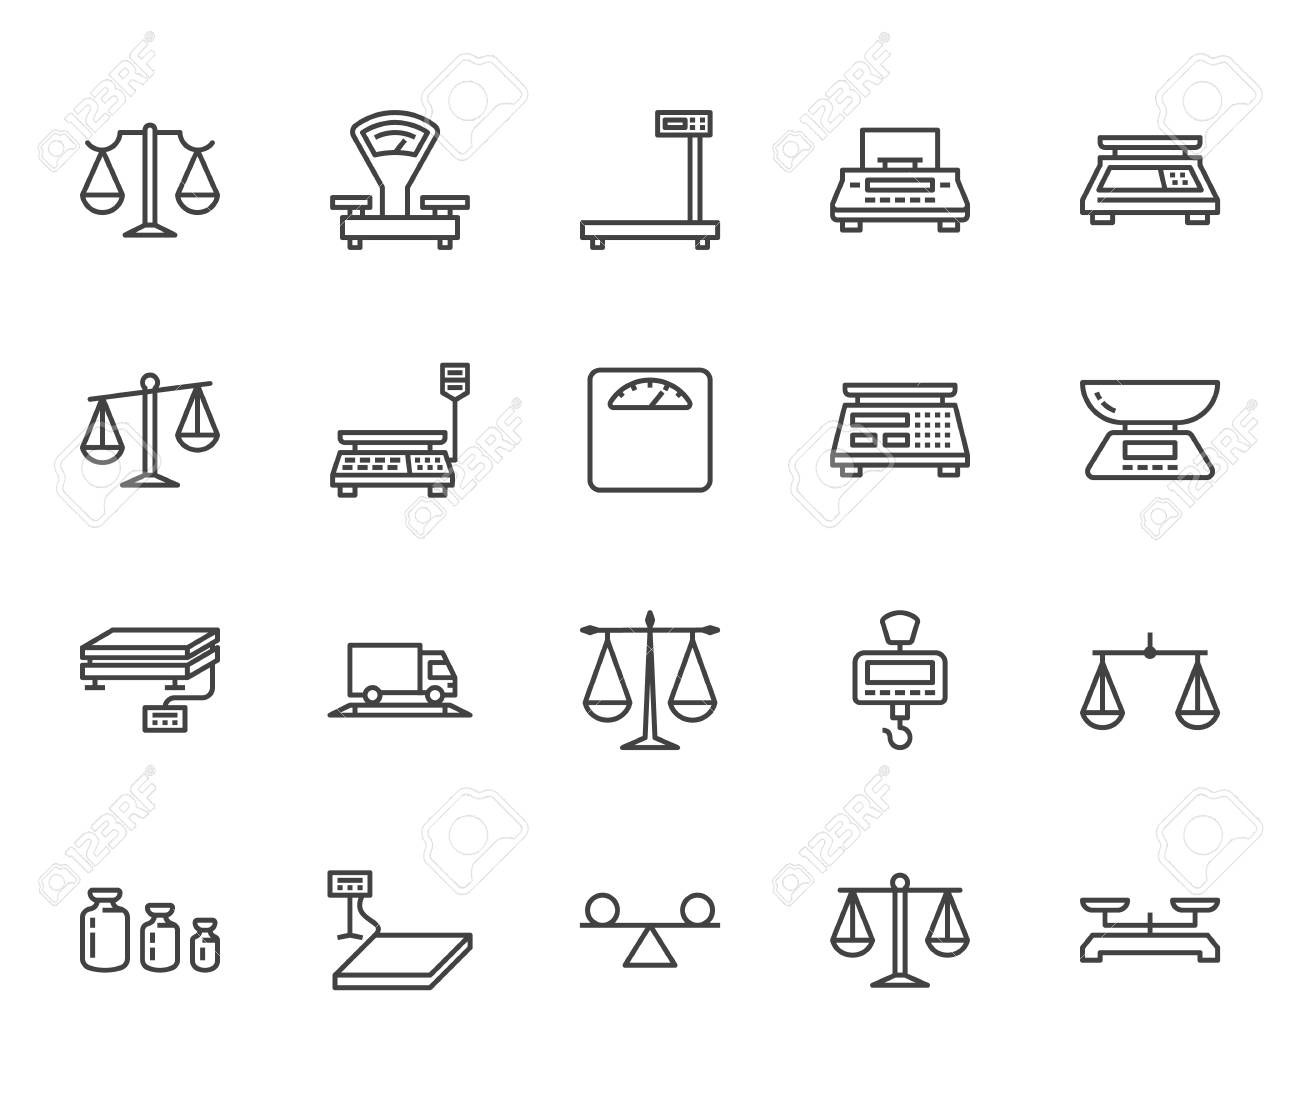 Balance flat line icons set. Weight measurement tools, diet scales, trade, electronic, industrial scale calibration vector illustrations. Thin sign justice concept. Pixel perfect 64x64 Editable Stroke - 116446192